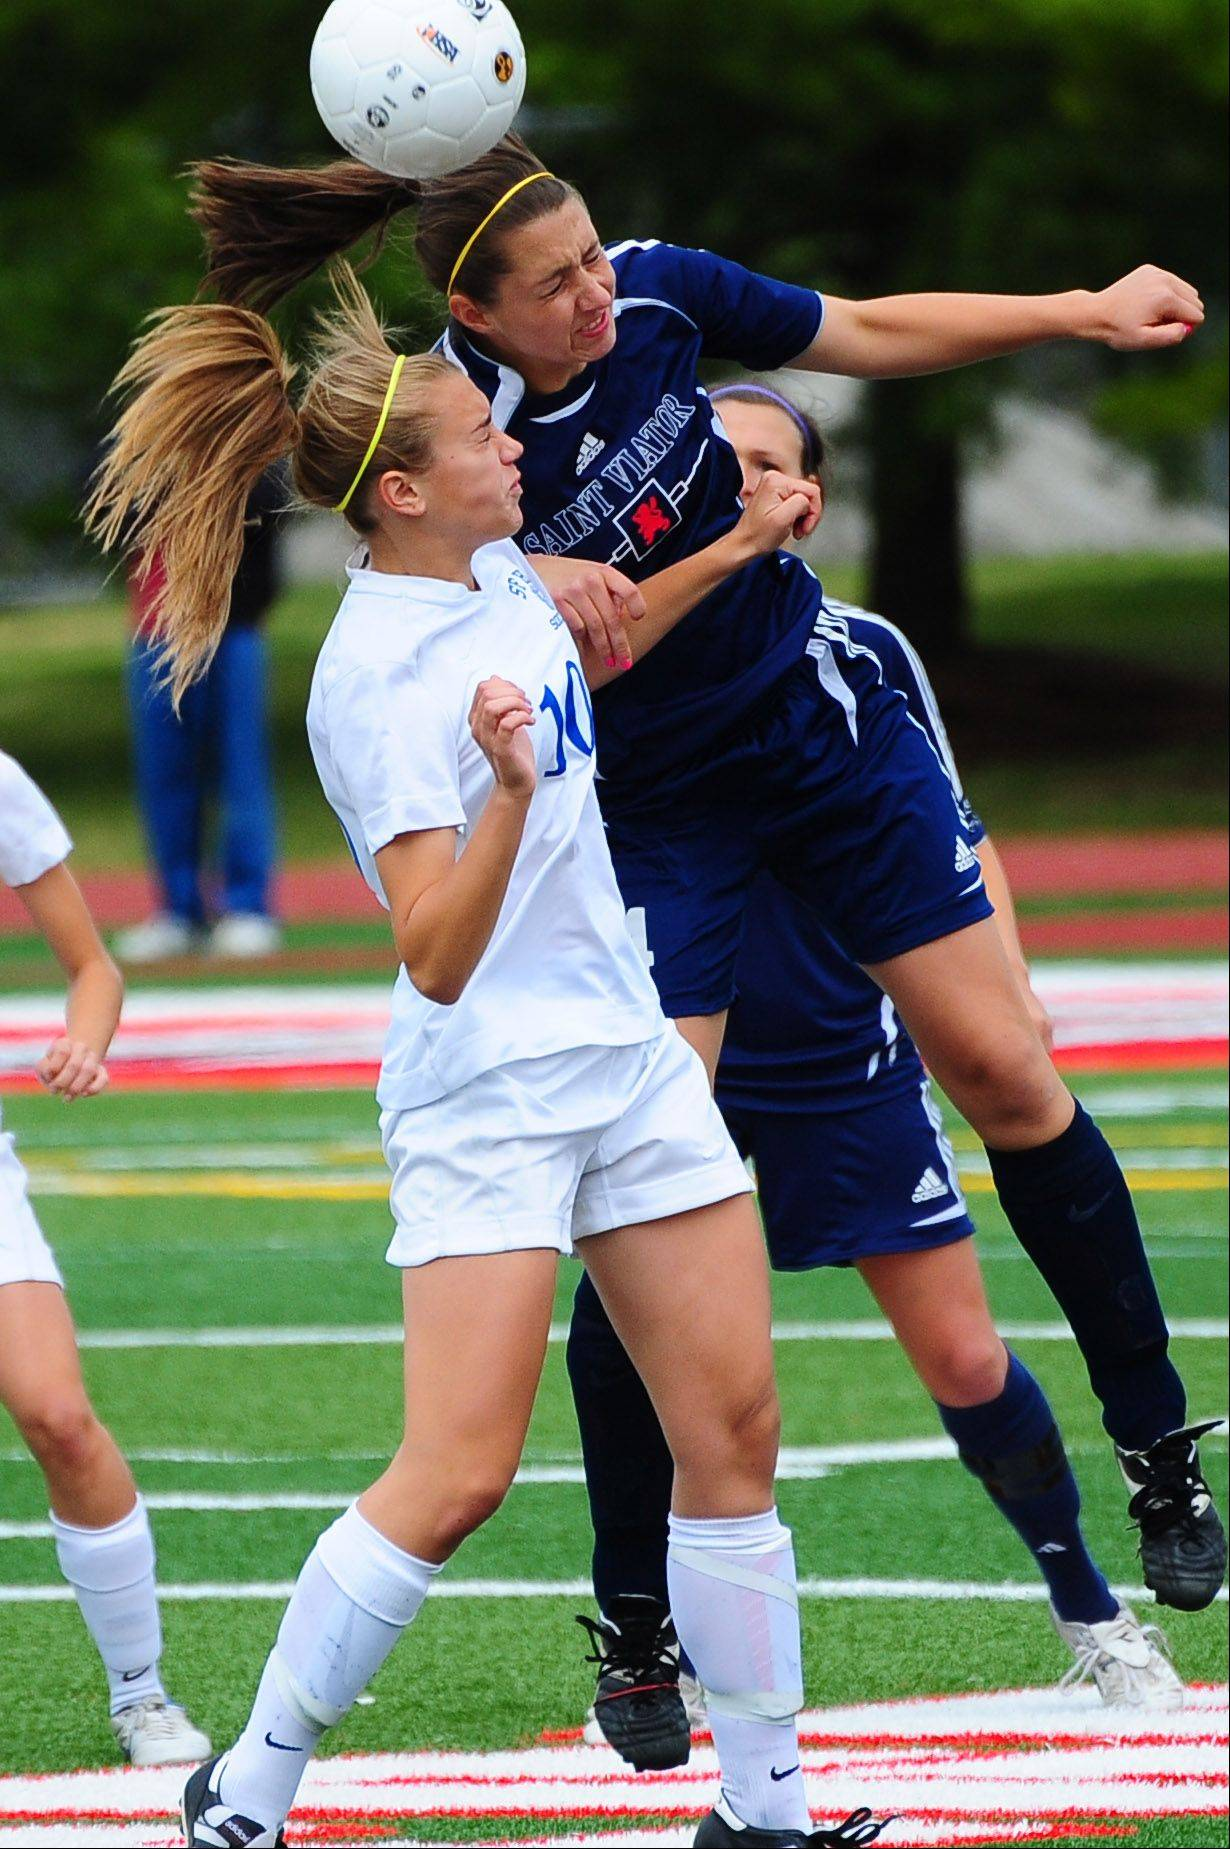 St. Francis midfielder Amanda Gaggioli battles St. Viator's Lauren Falotico for a head ball during the Class 2A girls soccer semifinal on Friday at North Central College.